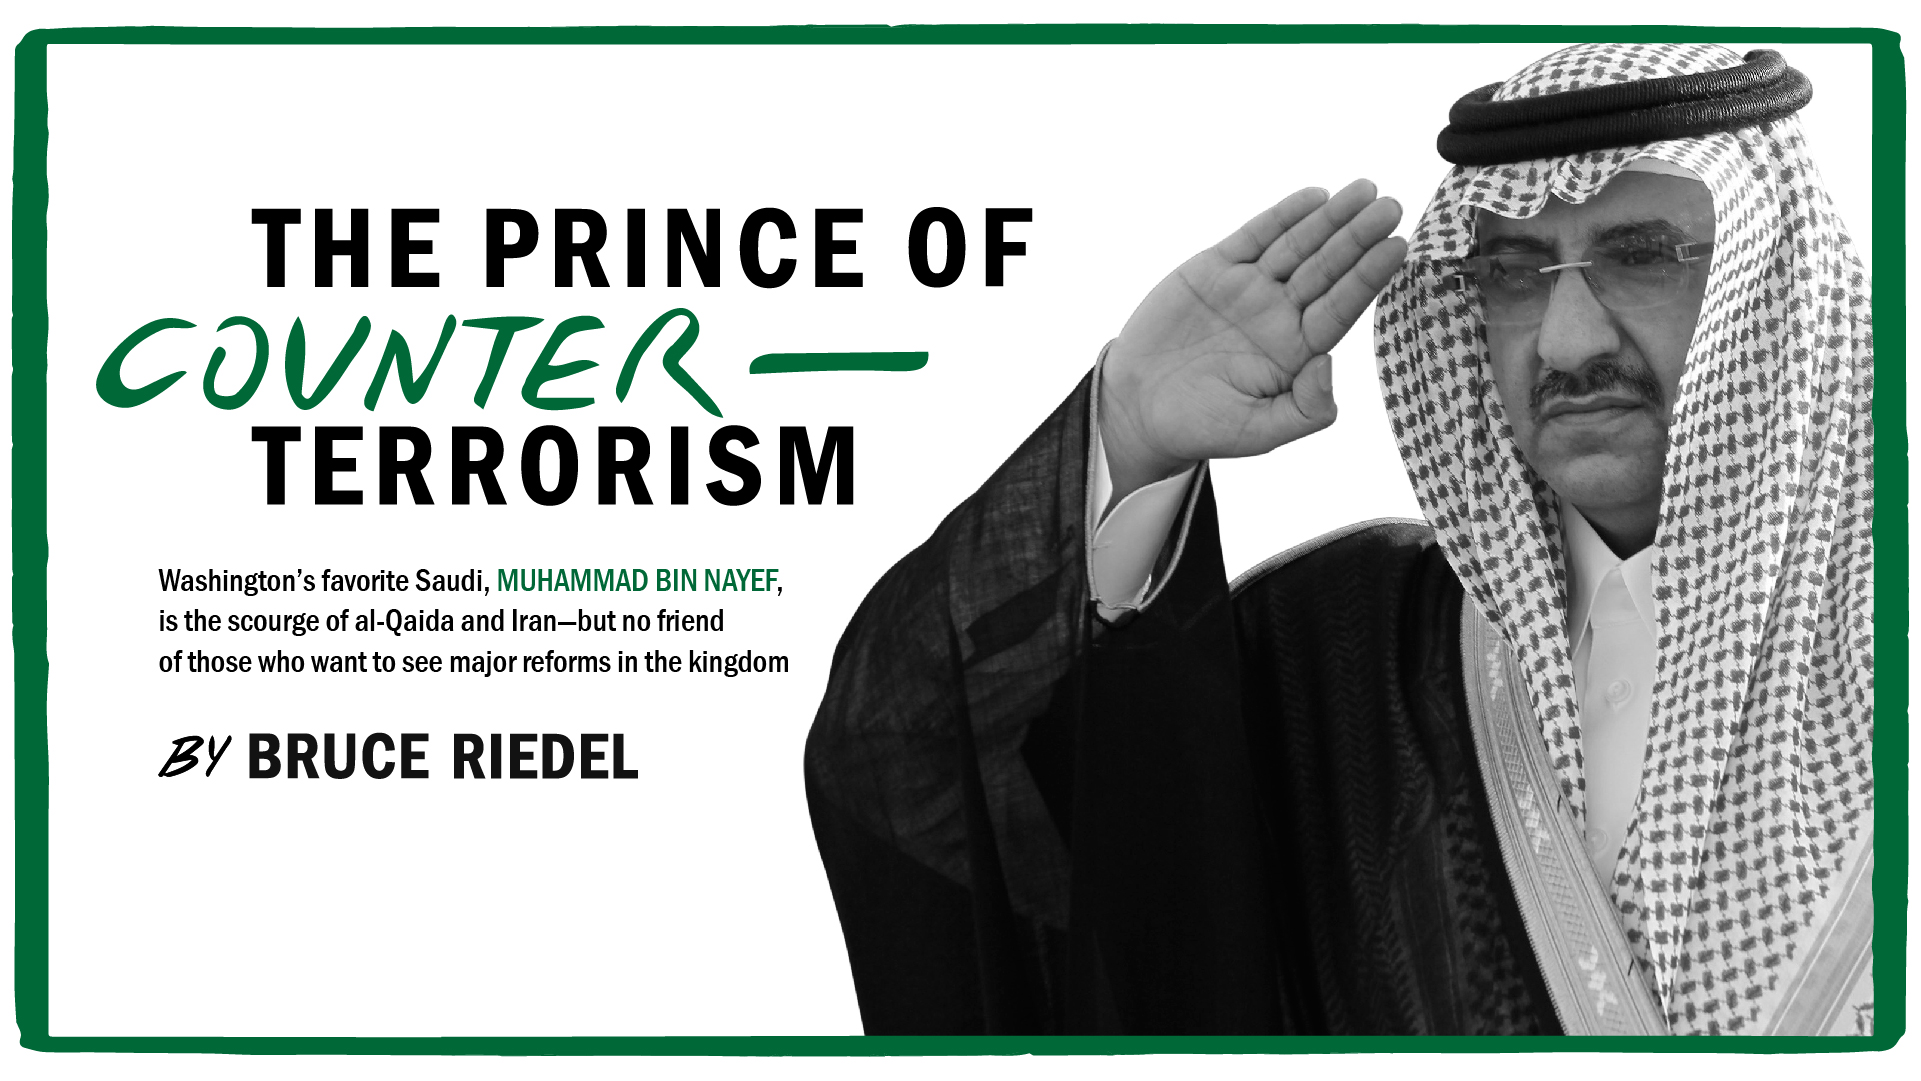 The Prince Of Counterterrorism: The Story Of Washington's Favorite Saudi,  Muhammad Bin Nayef  Brookings Institution